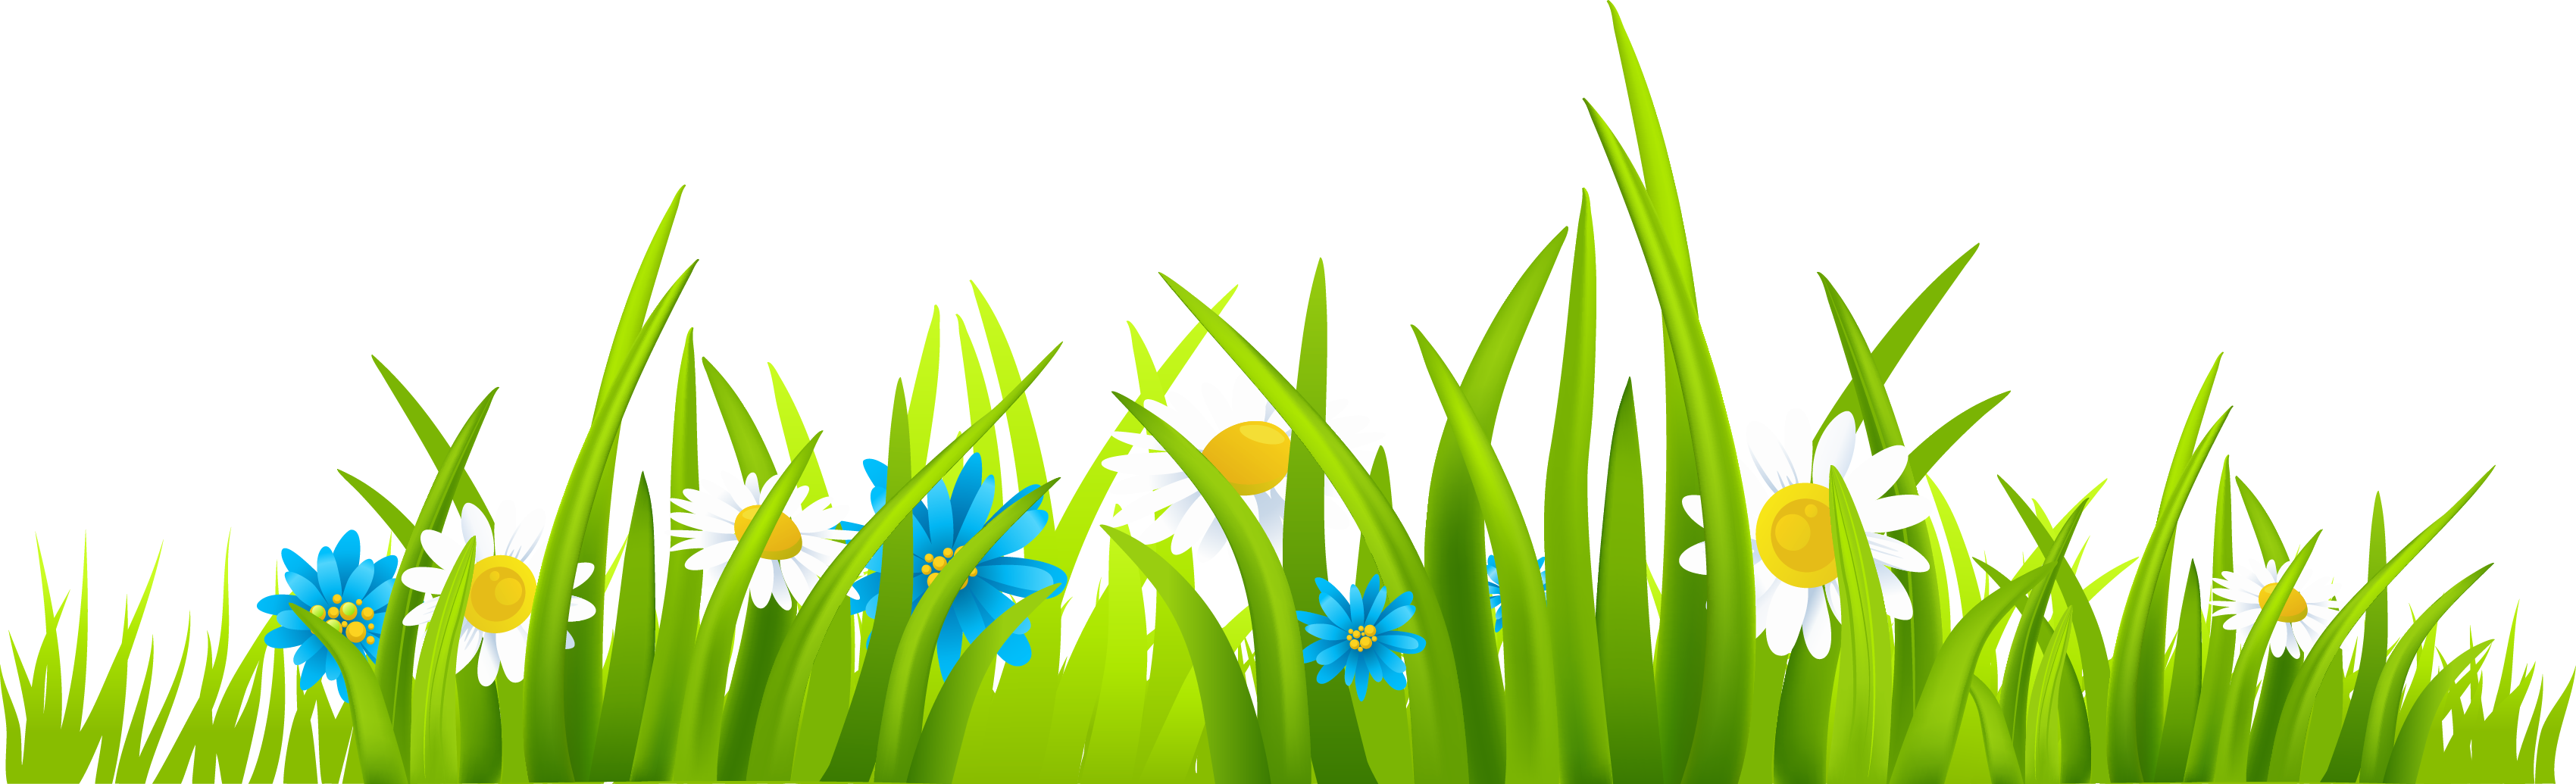 Clipart grass banner.  collection of green